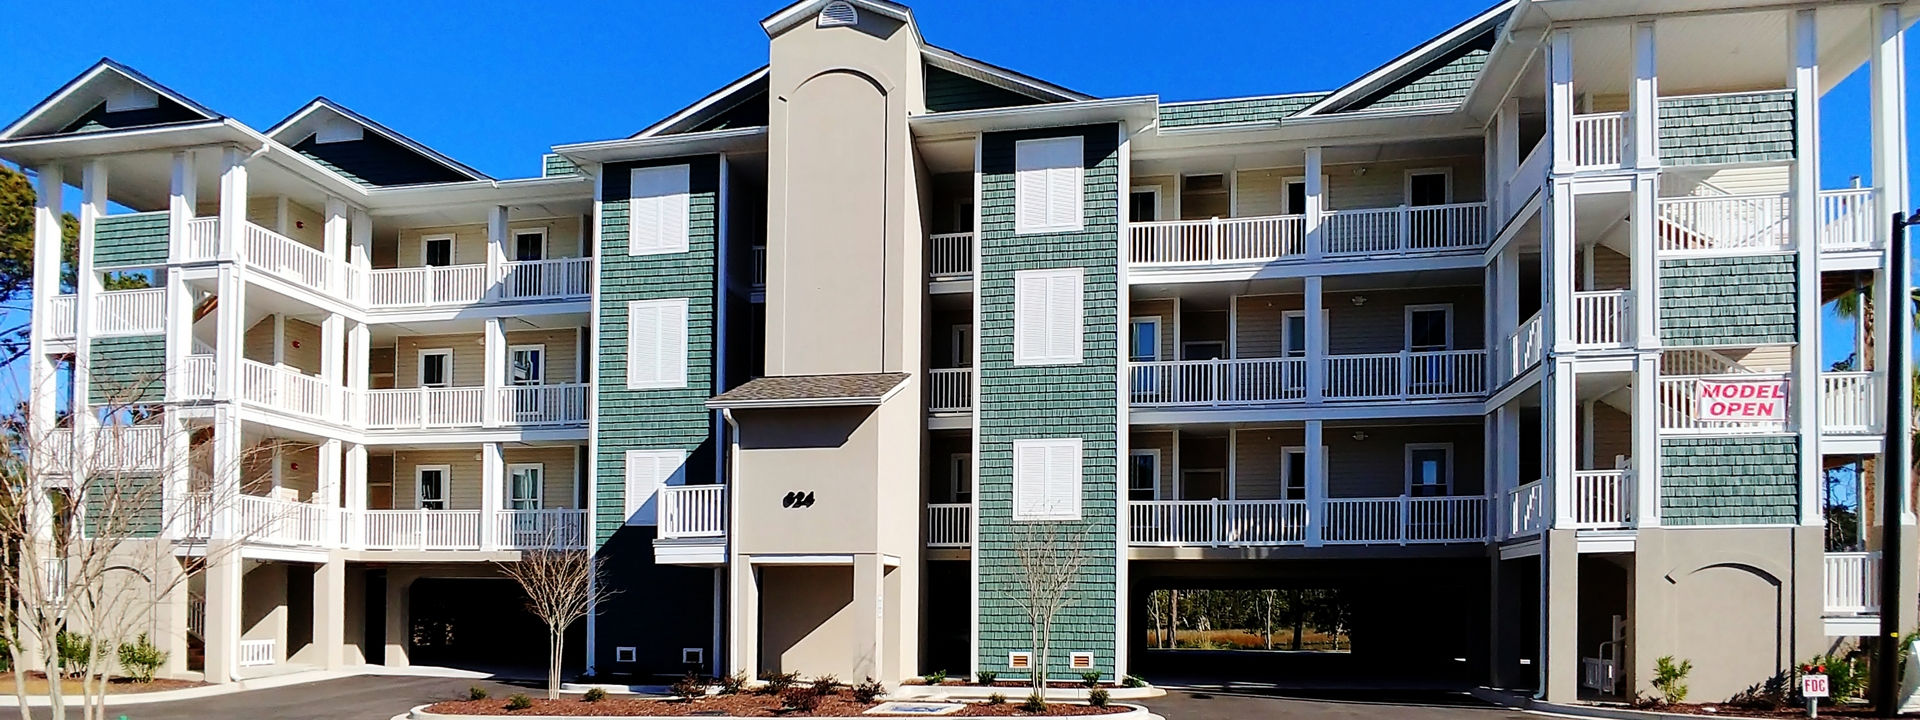 Condos With Elevators For Sale in Myrtle beach